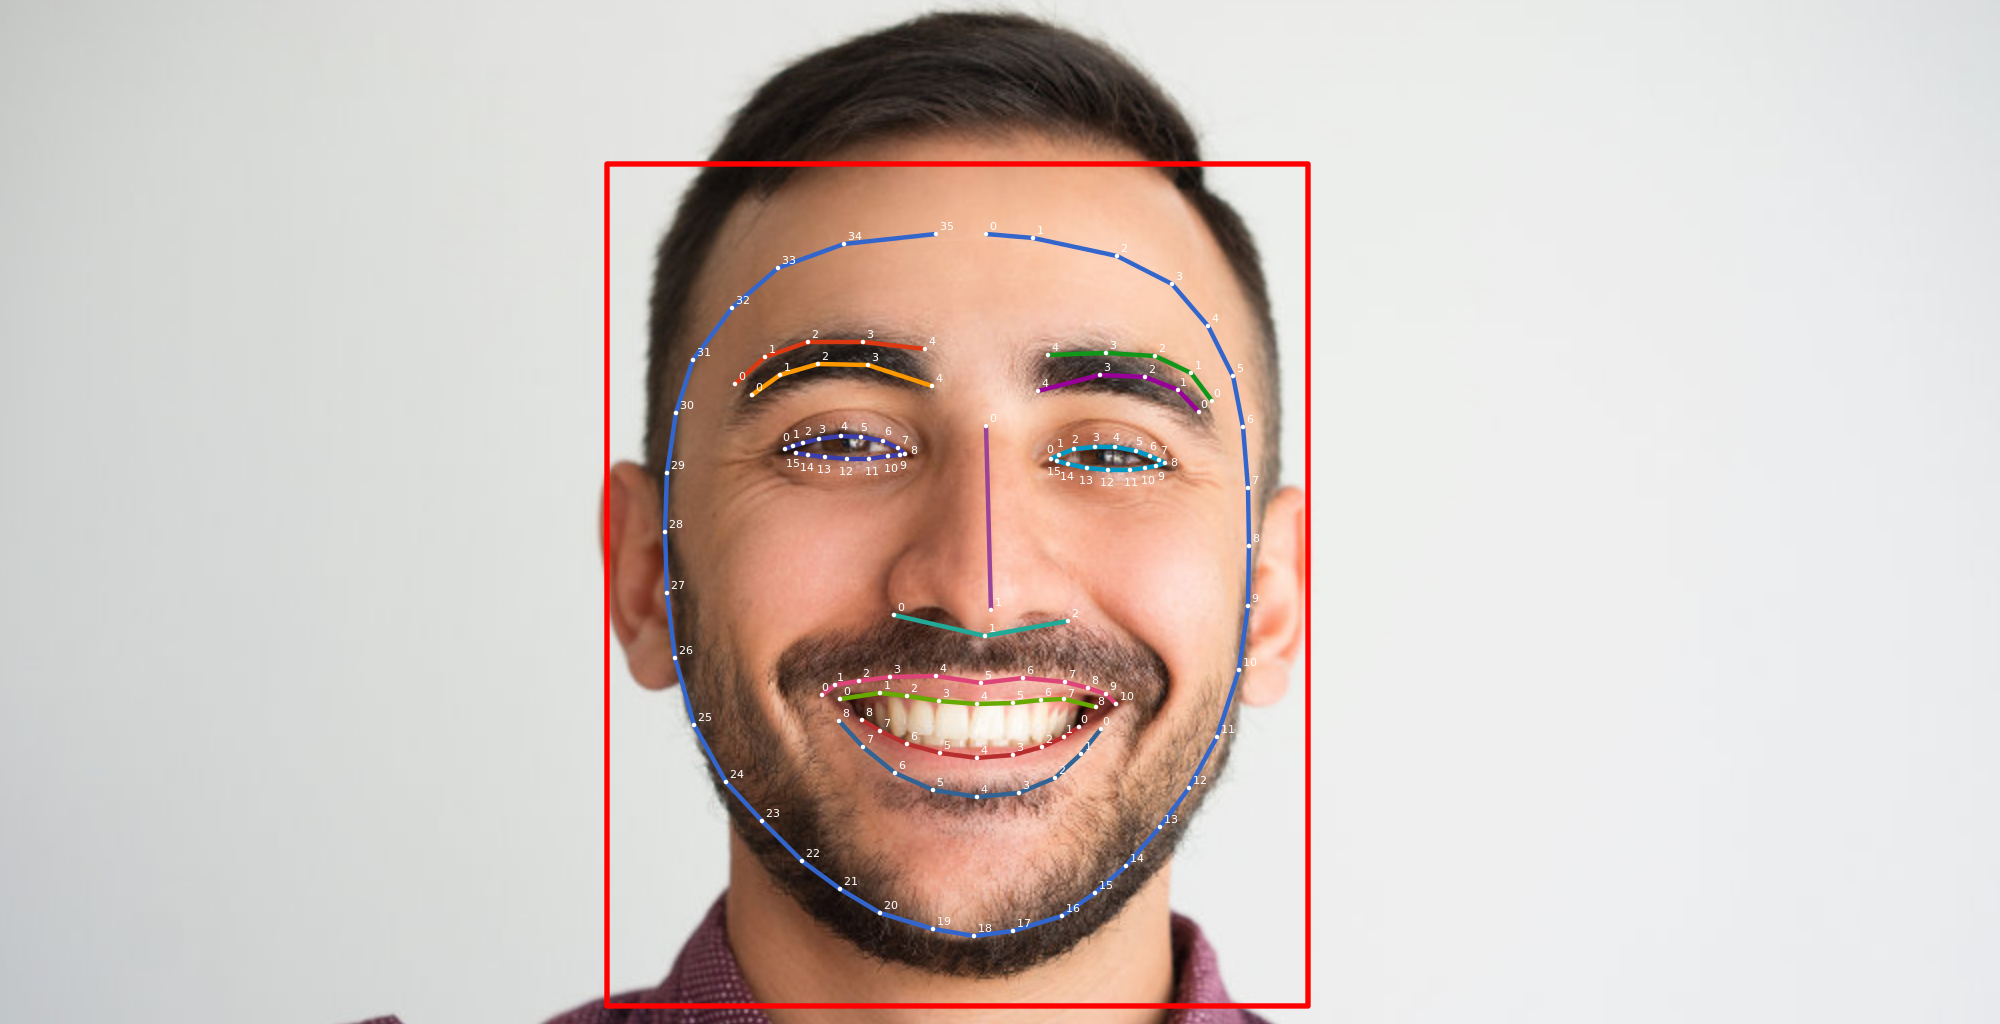 Add face-detection to your app with the Machine Learning Kit